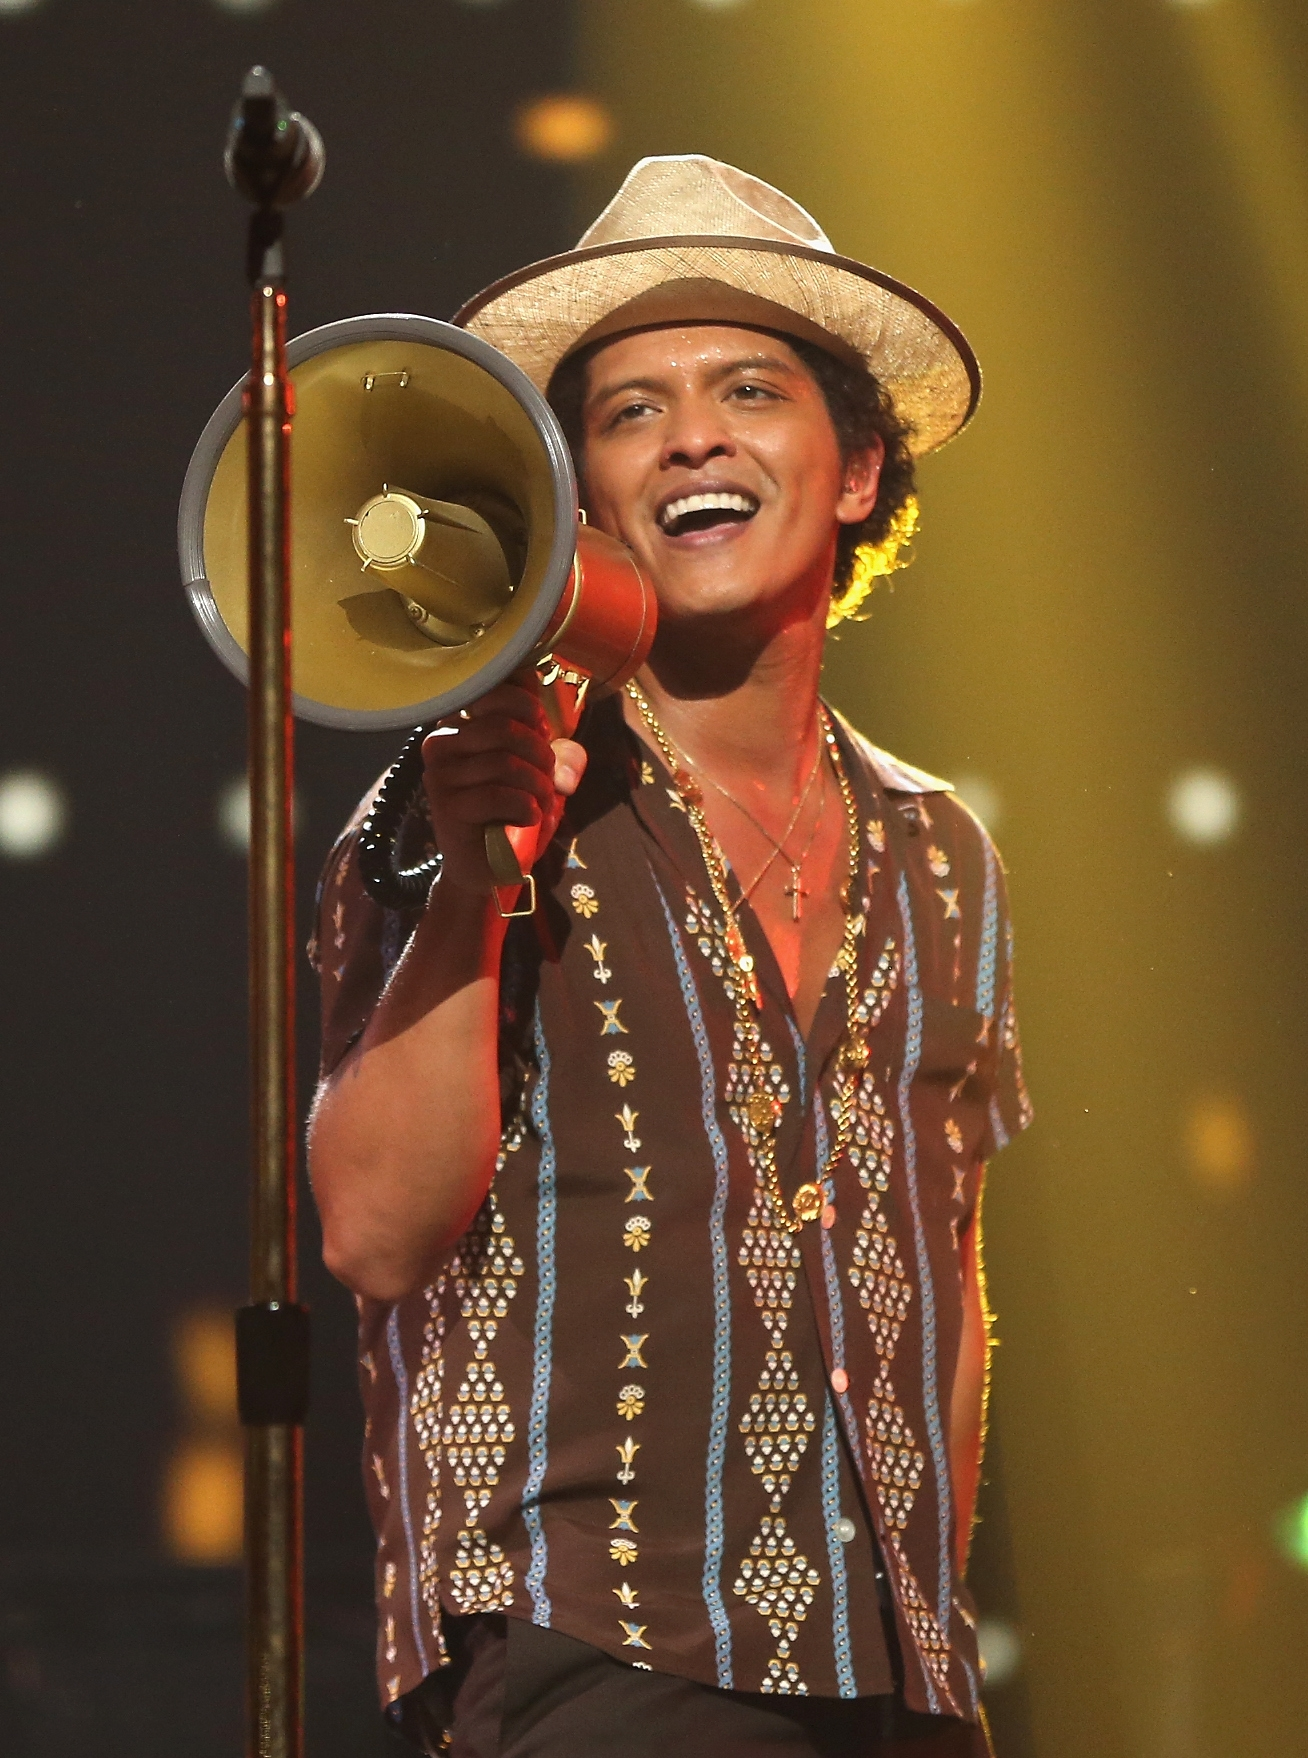 Recording artist Bruno Mars was a big hit with the crowd Saturday at the iHeartRadio Music Festival at the MGM Grand Garden Arena in Las Vegas.